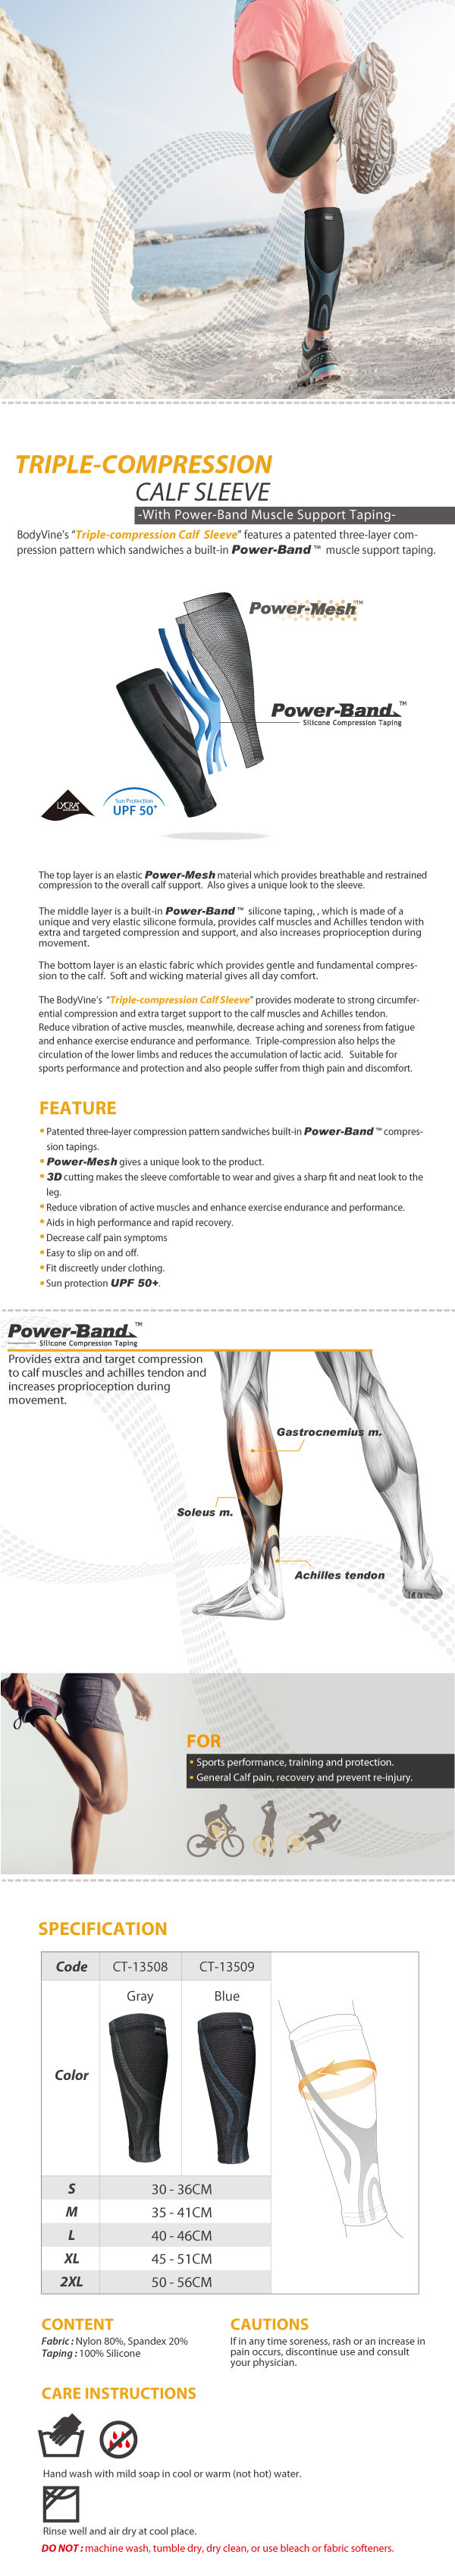 BodyVine-Triple-Compression-Calf-Sleeve_Muscle-Support-Taping